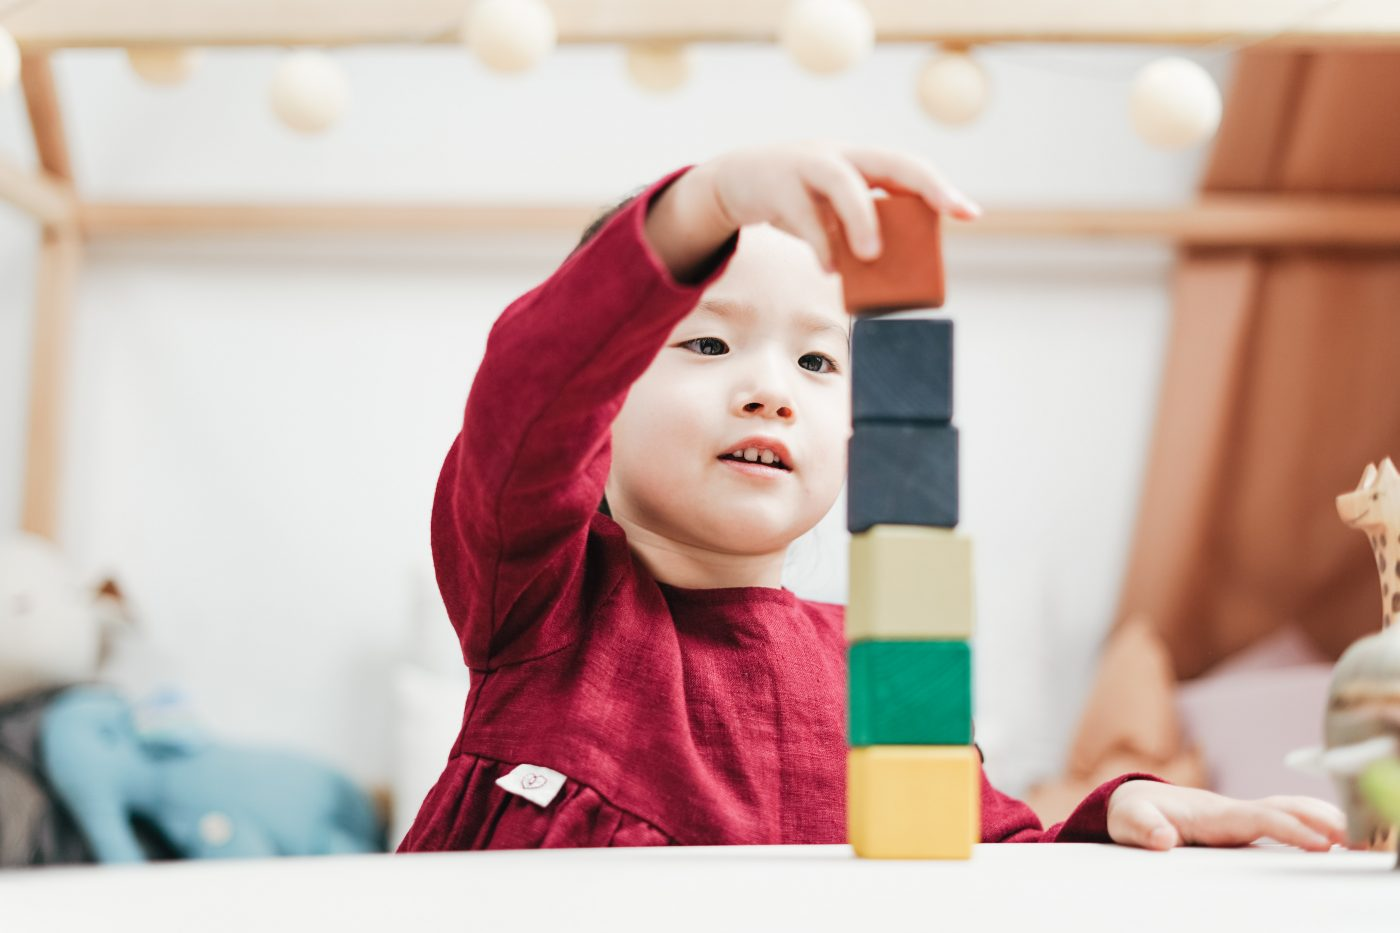 Little boy playing with color blocks